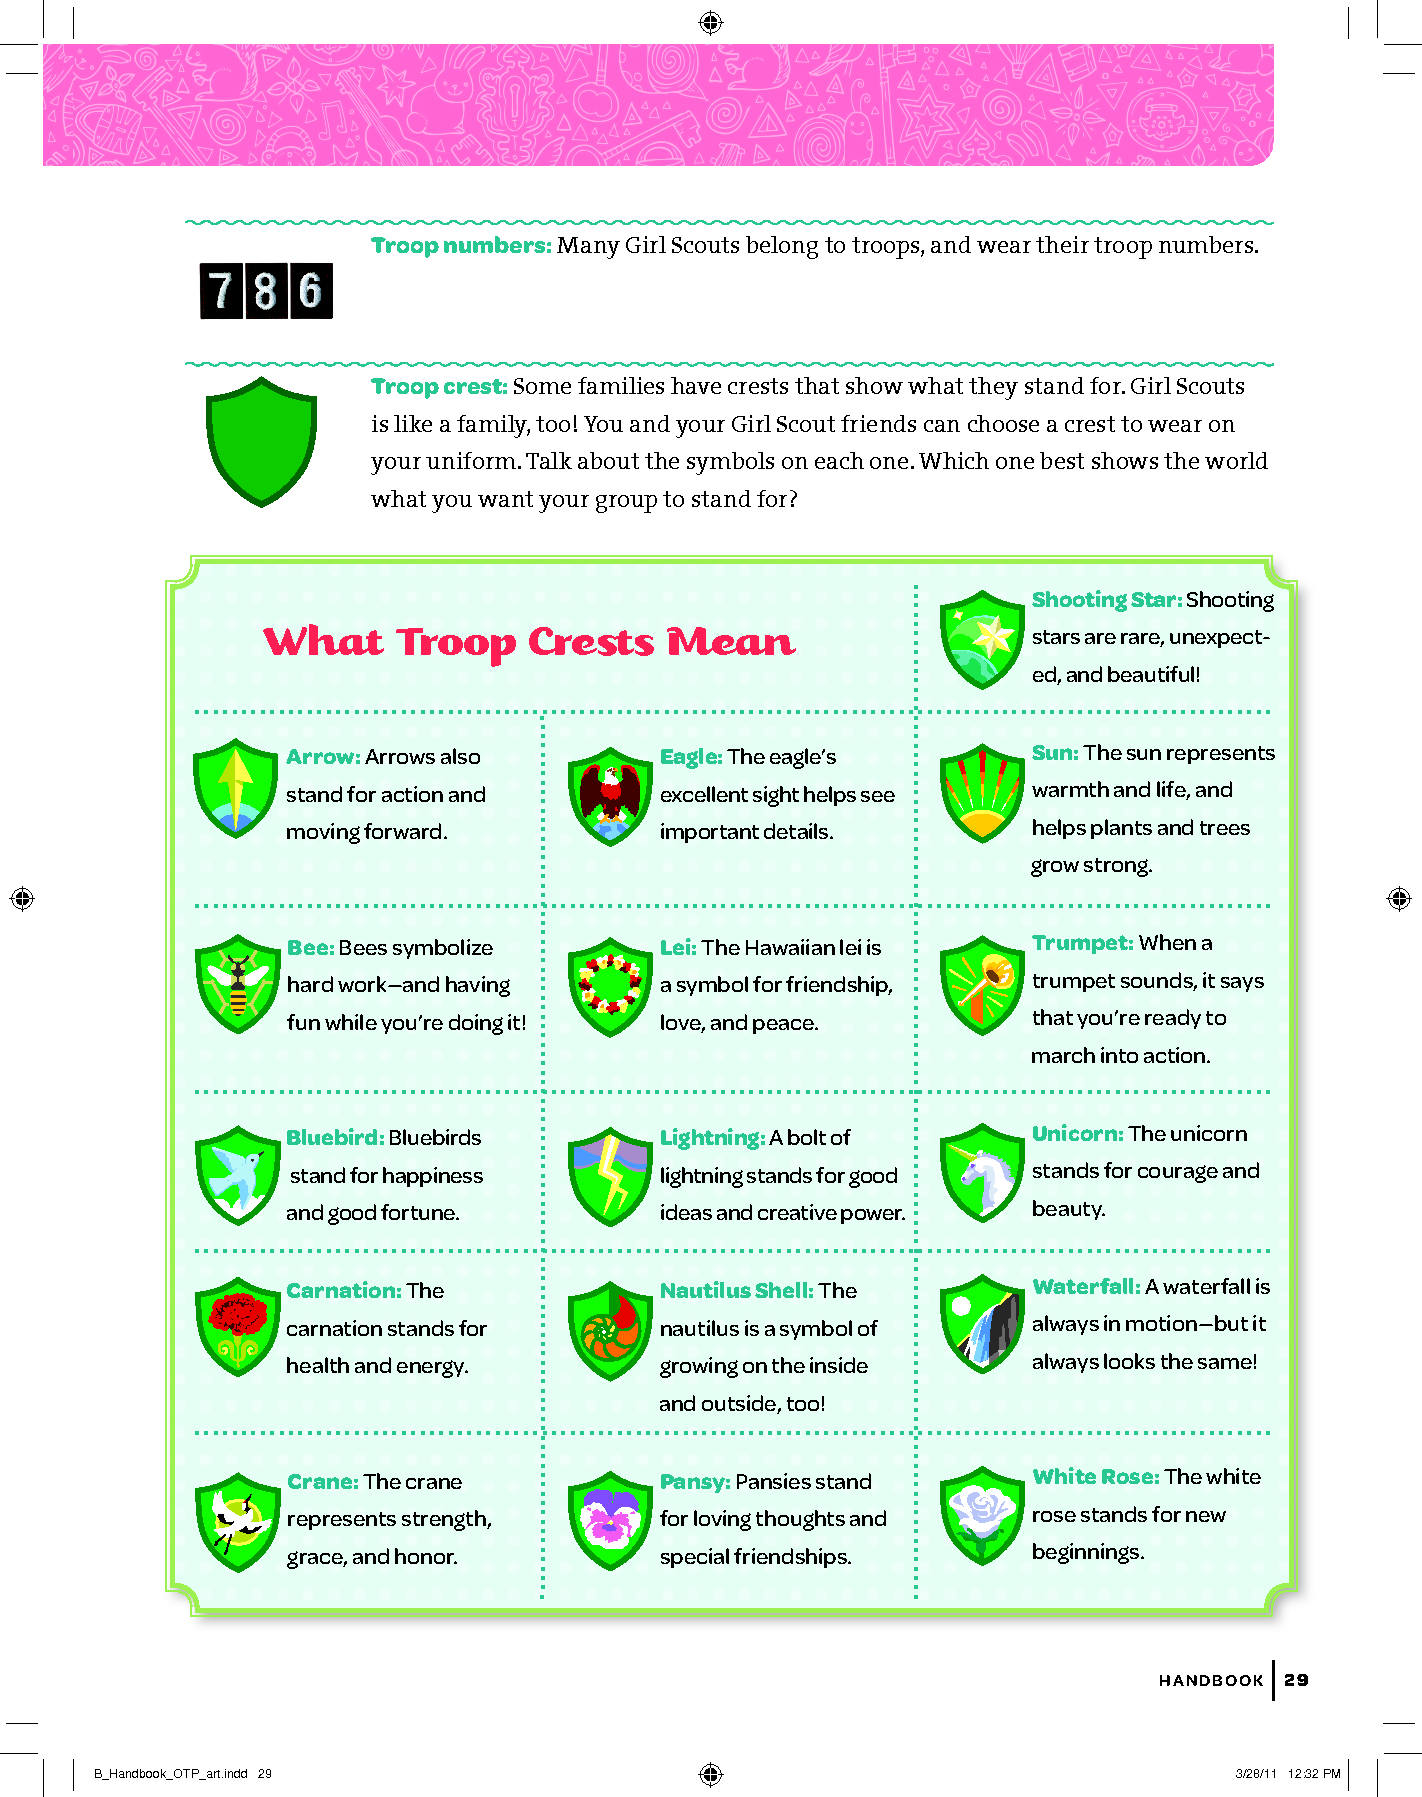 Girl Scout Crest Meanings